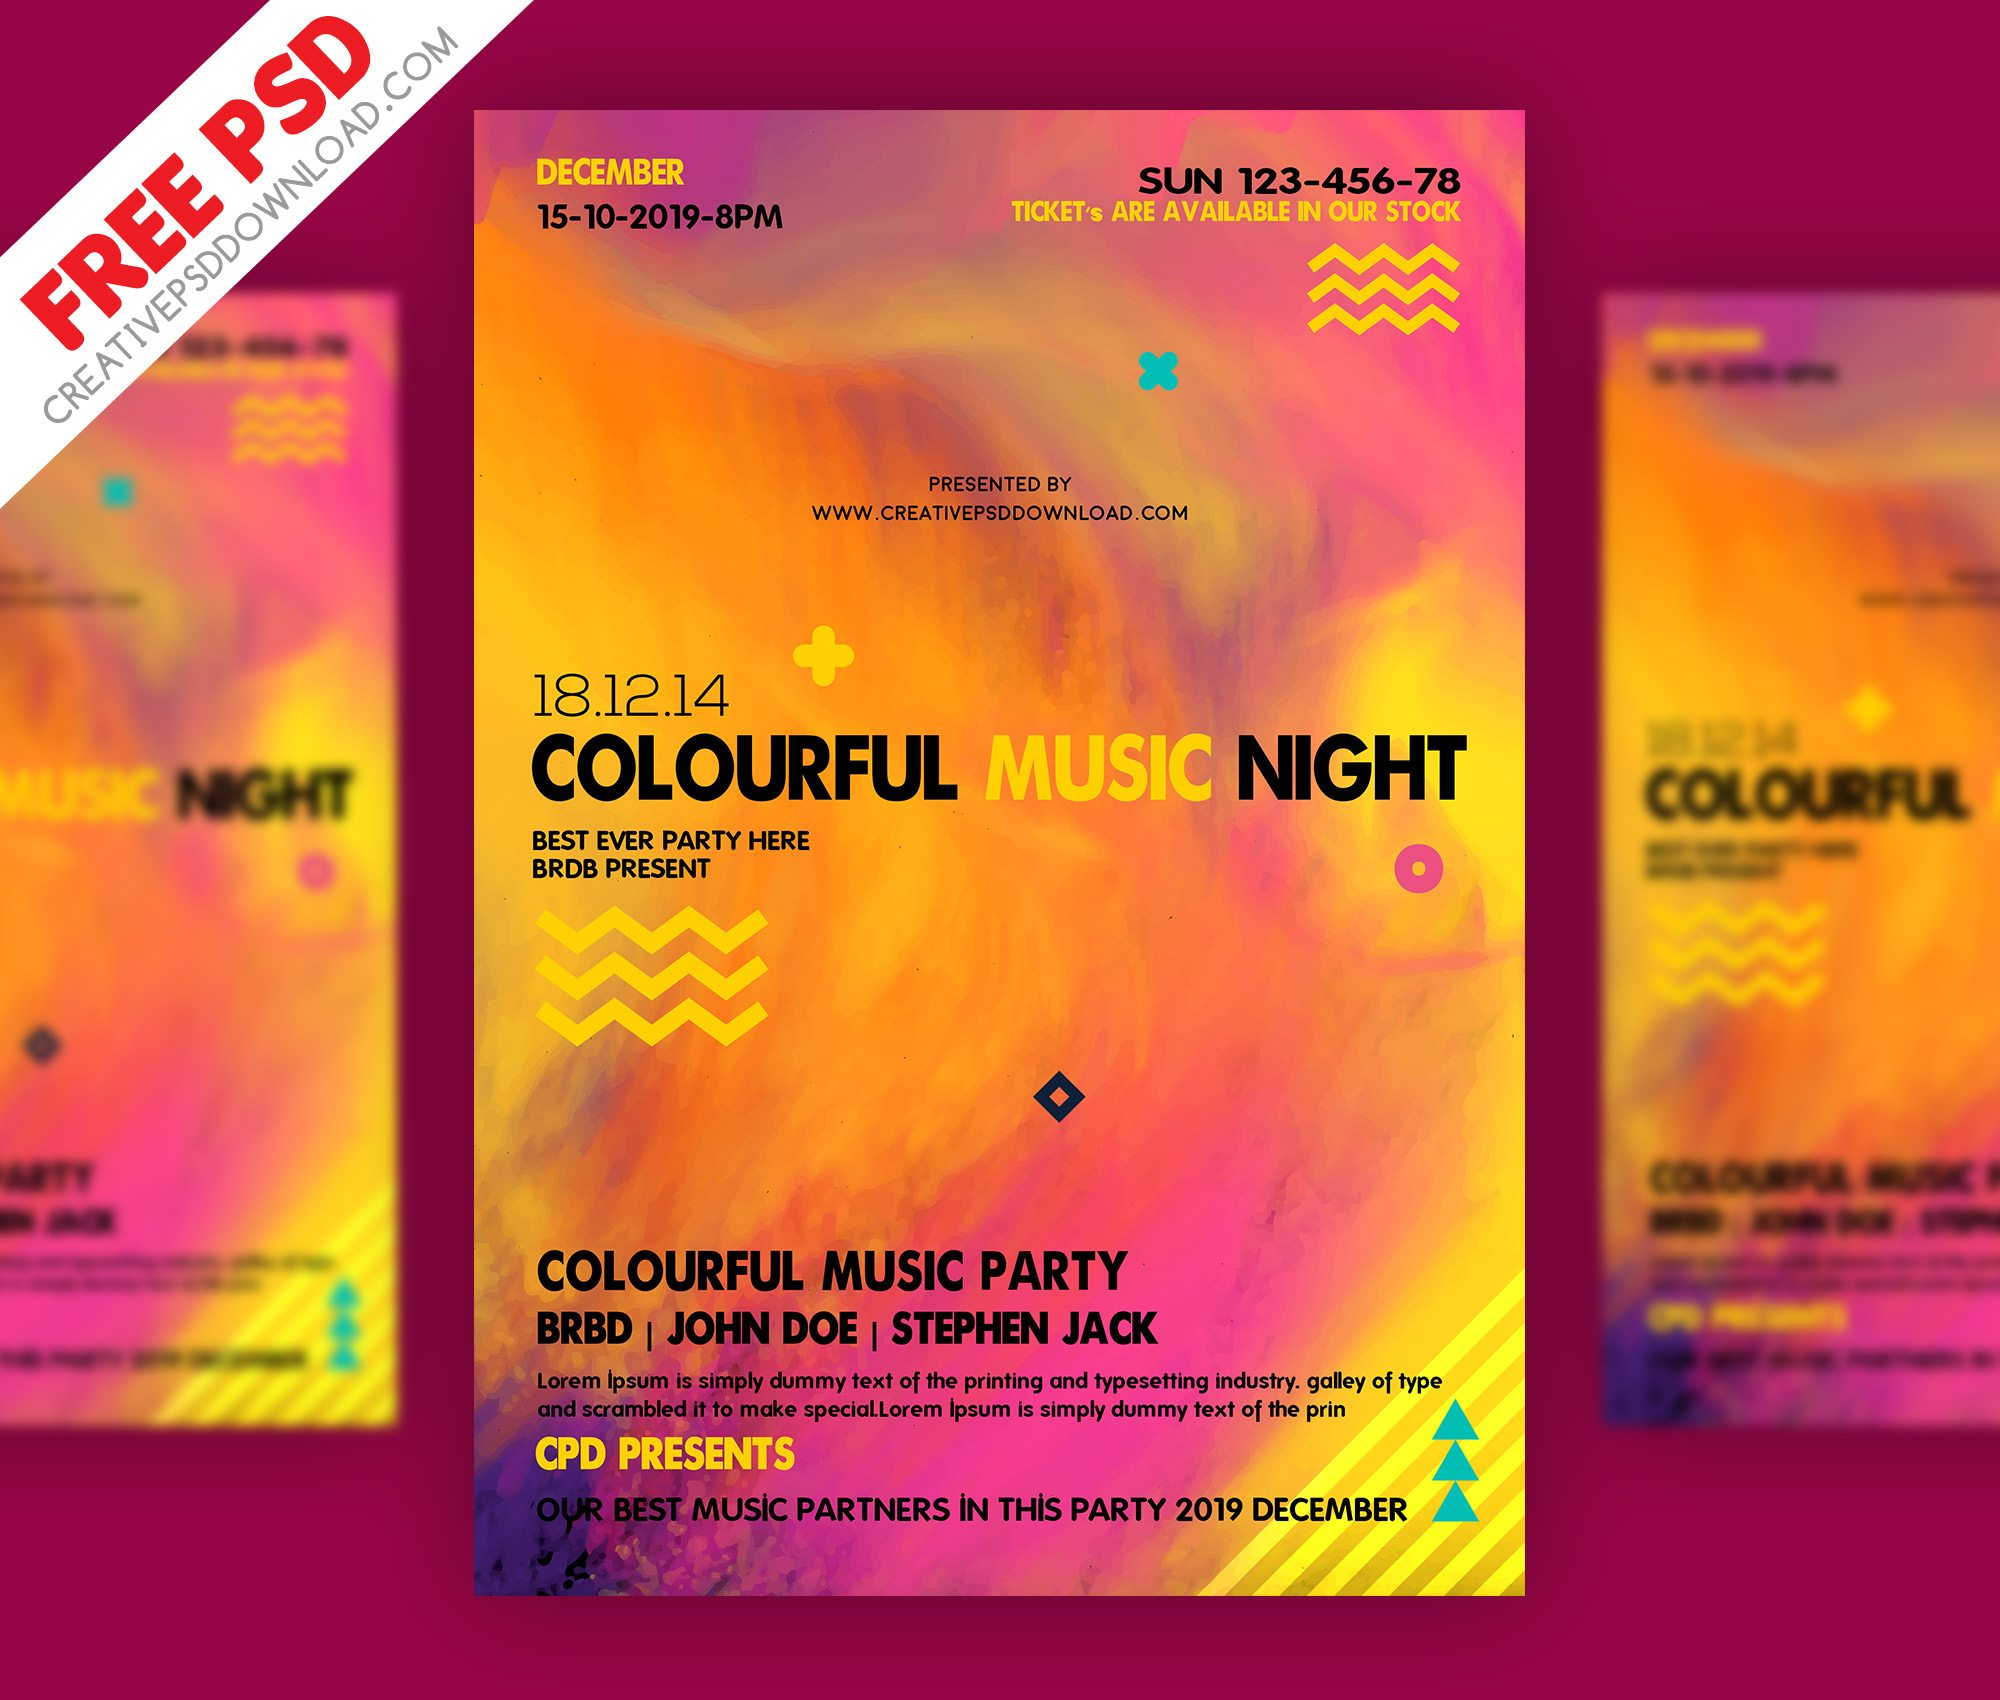 free party flyer templates,club flyer templates photoshop,free party flyer maker,birthday party flyer templates free,free psd flyer templates 2015,free party flyer templates for microsoft word,party flyer background design,party flyer templates psd,club flyer,music flyer,free flyer,free psd,download psd,party flyer,eventer flyer